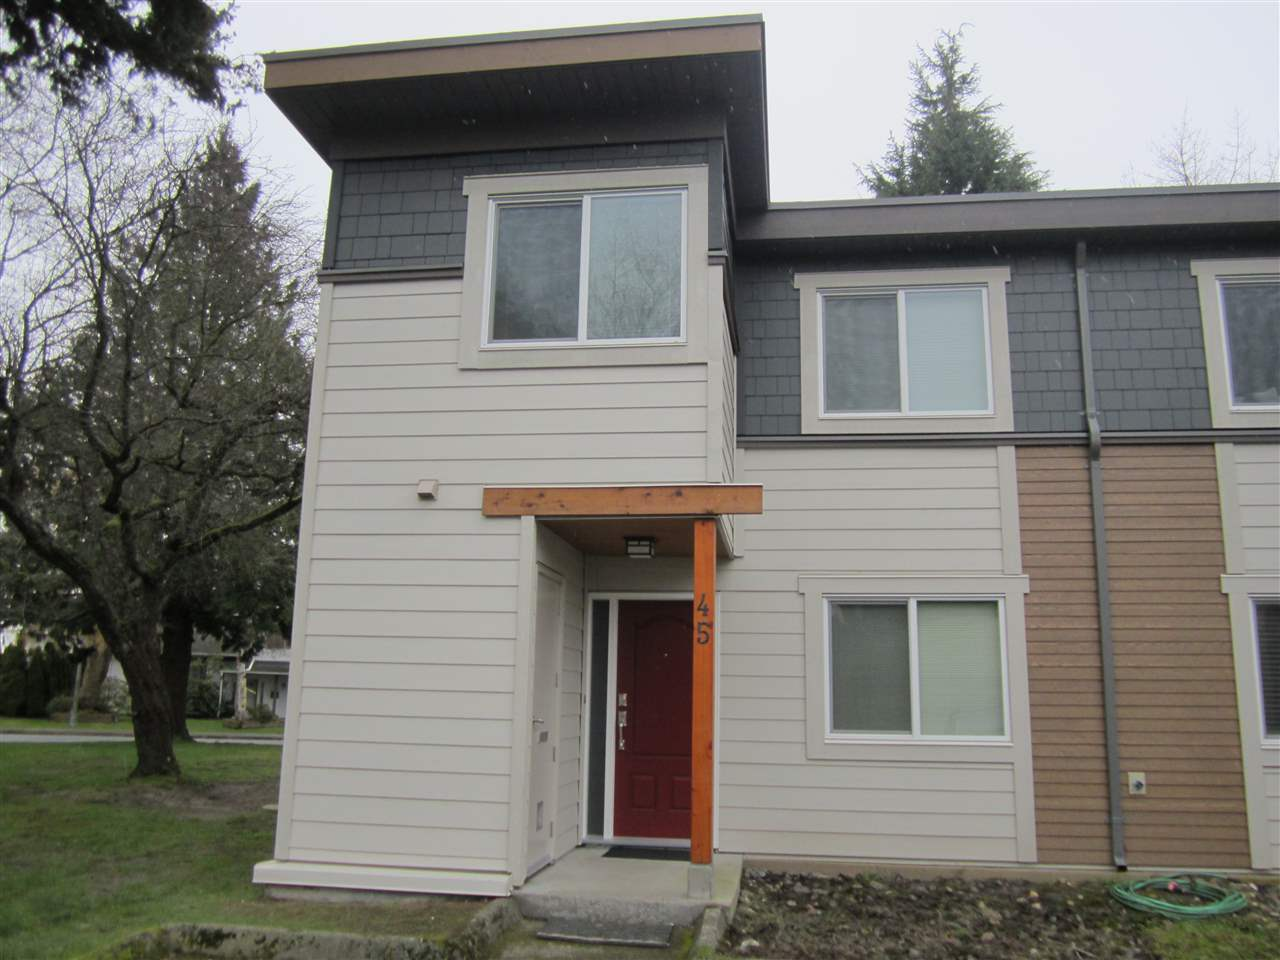 "Fabulous opportunity for a End unit Townhouse in a great Steveston Location close to dyke walks and the ""Village""! This complex is special in that it has a brand new, completely redone rainscreened exterior. Attractive use of Hardi Plank siding, new windows and doors gives this complex the look and feel of a brand new complex! Interior of this unit has been freshly painted and thoroughly cleaned up to give it a nice, bright look. Move right in. Probably the best location in the complex, a nice end unit with a good sized and private southern exposed backyard not backing onto any neighbours. 2 parking spots in front of unit plus lots of street parking. Great place for a young family!"